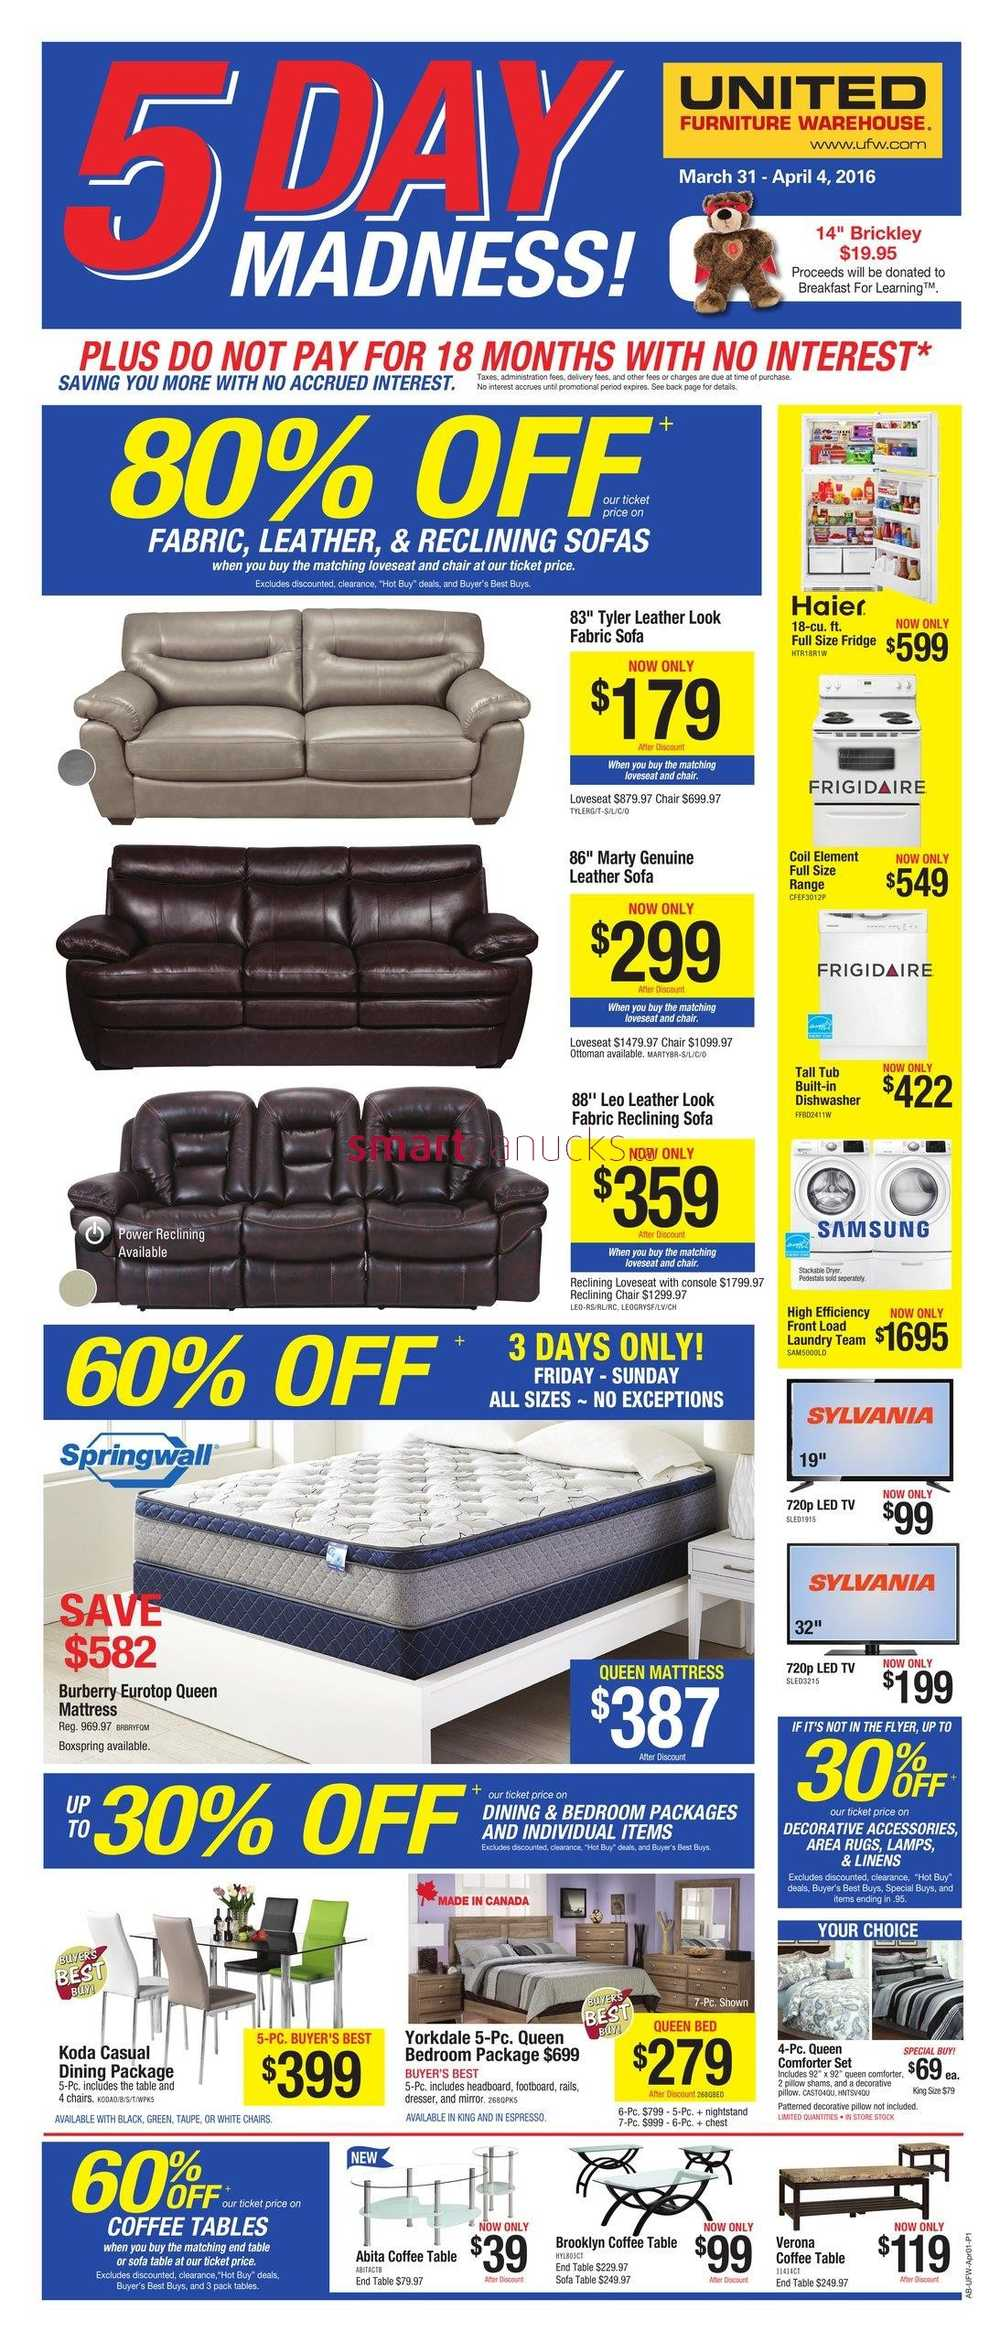 United Furniture Warehouse Flyer March 31 To April 4